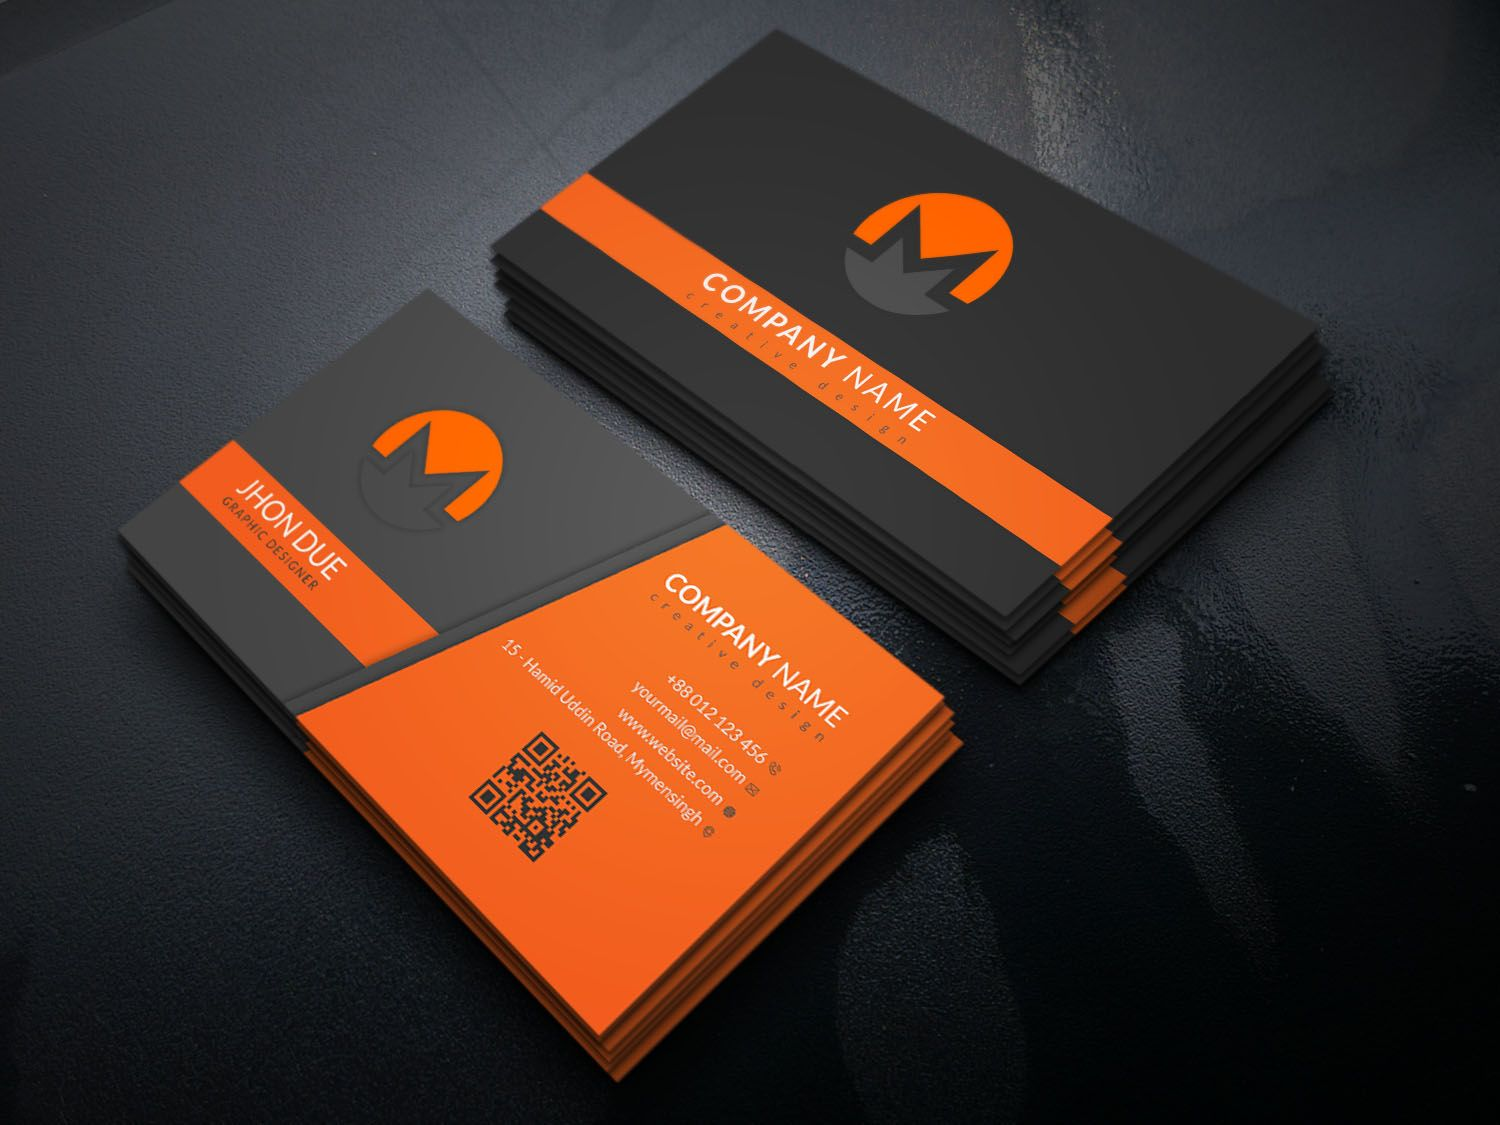 How To Design A Business Card With Photoshop Veppe Inside Visiting Card Templ Professional Business Card Design Visiting Card Design Visiting Card Design Psd